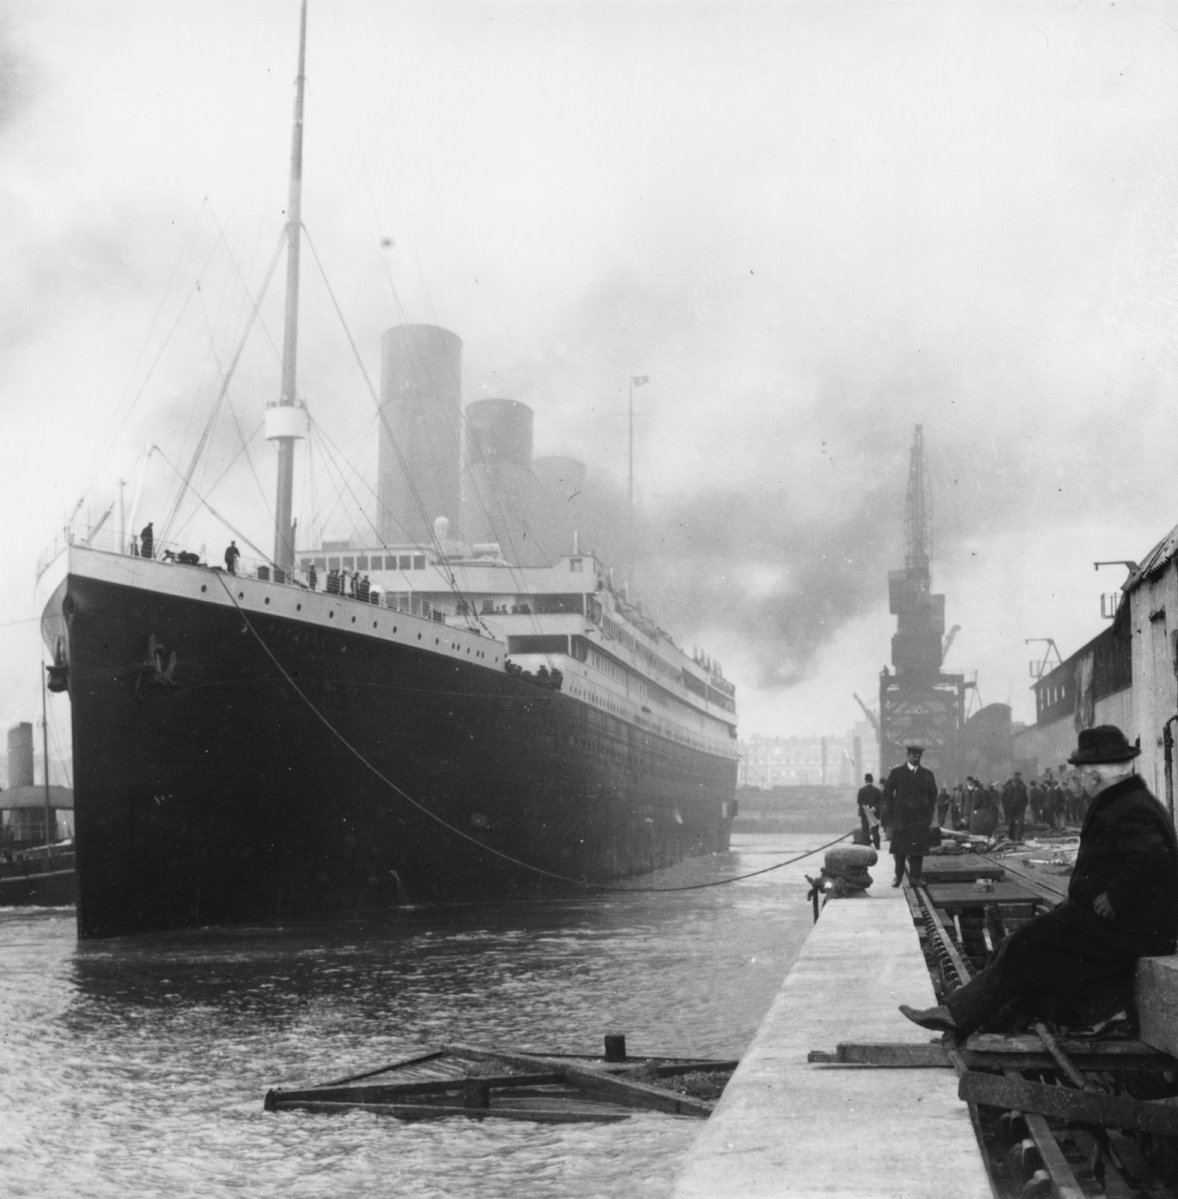 A Day of Sorrow. Thoughts of Paris, and Thoughts of the Titanic